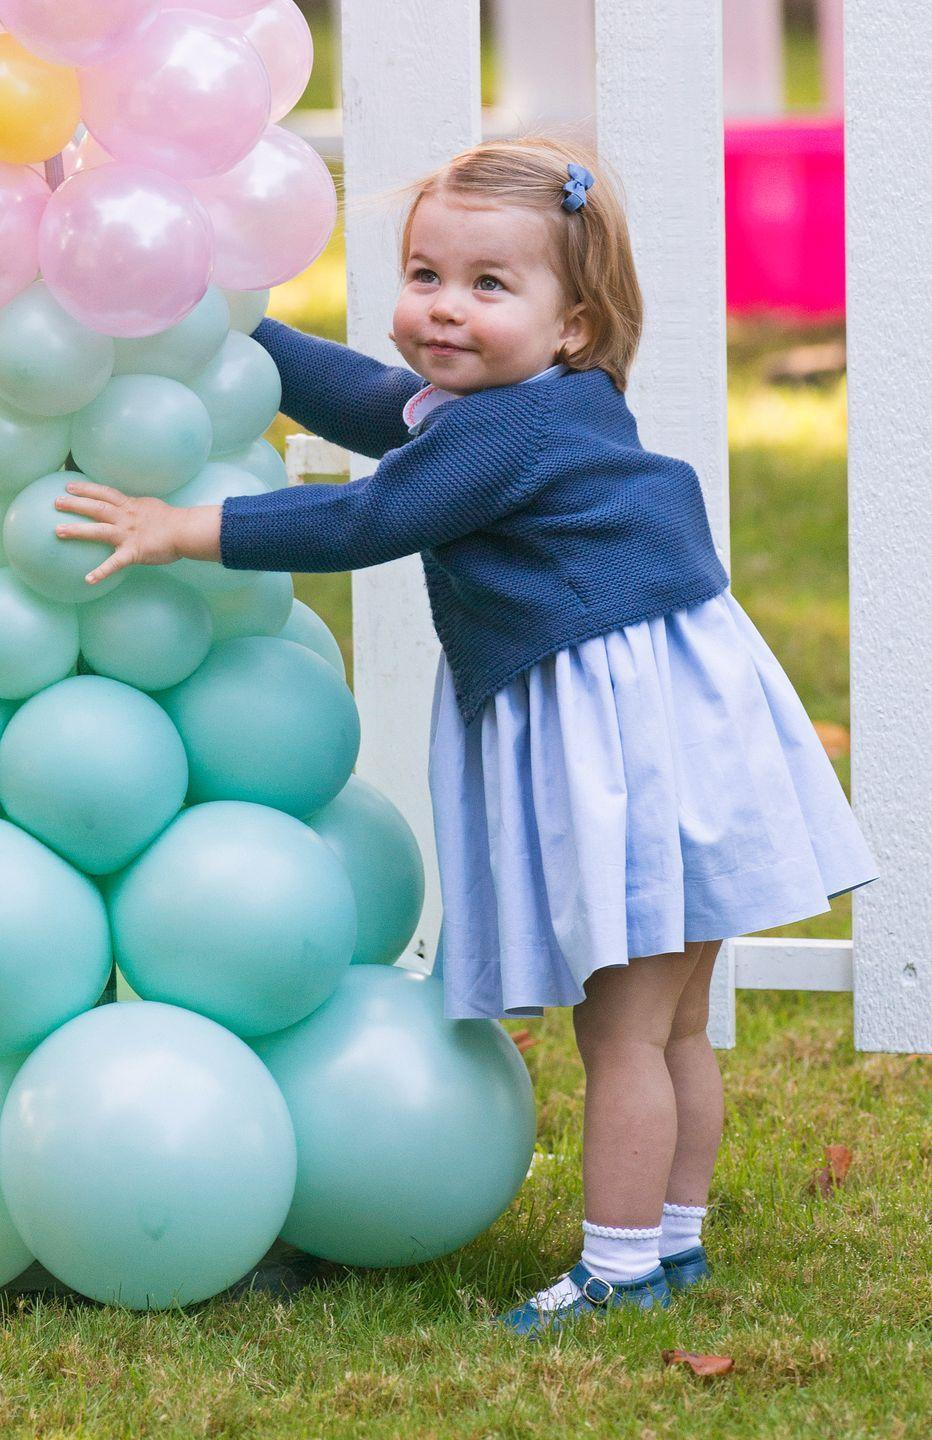 <p>Royals are never too young for monochrome—just take this all-blue look on Princess Charlotte in Victoria, Canada in 2016 as proof. </p>